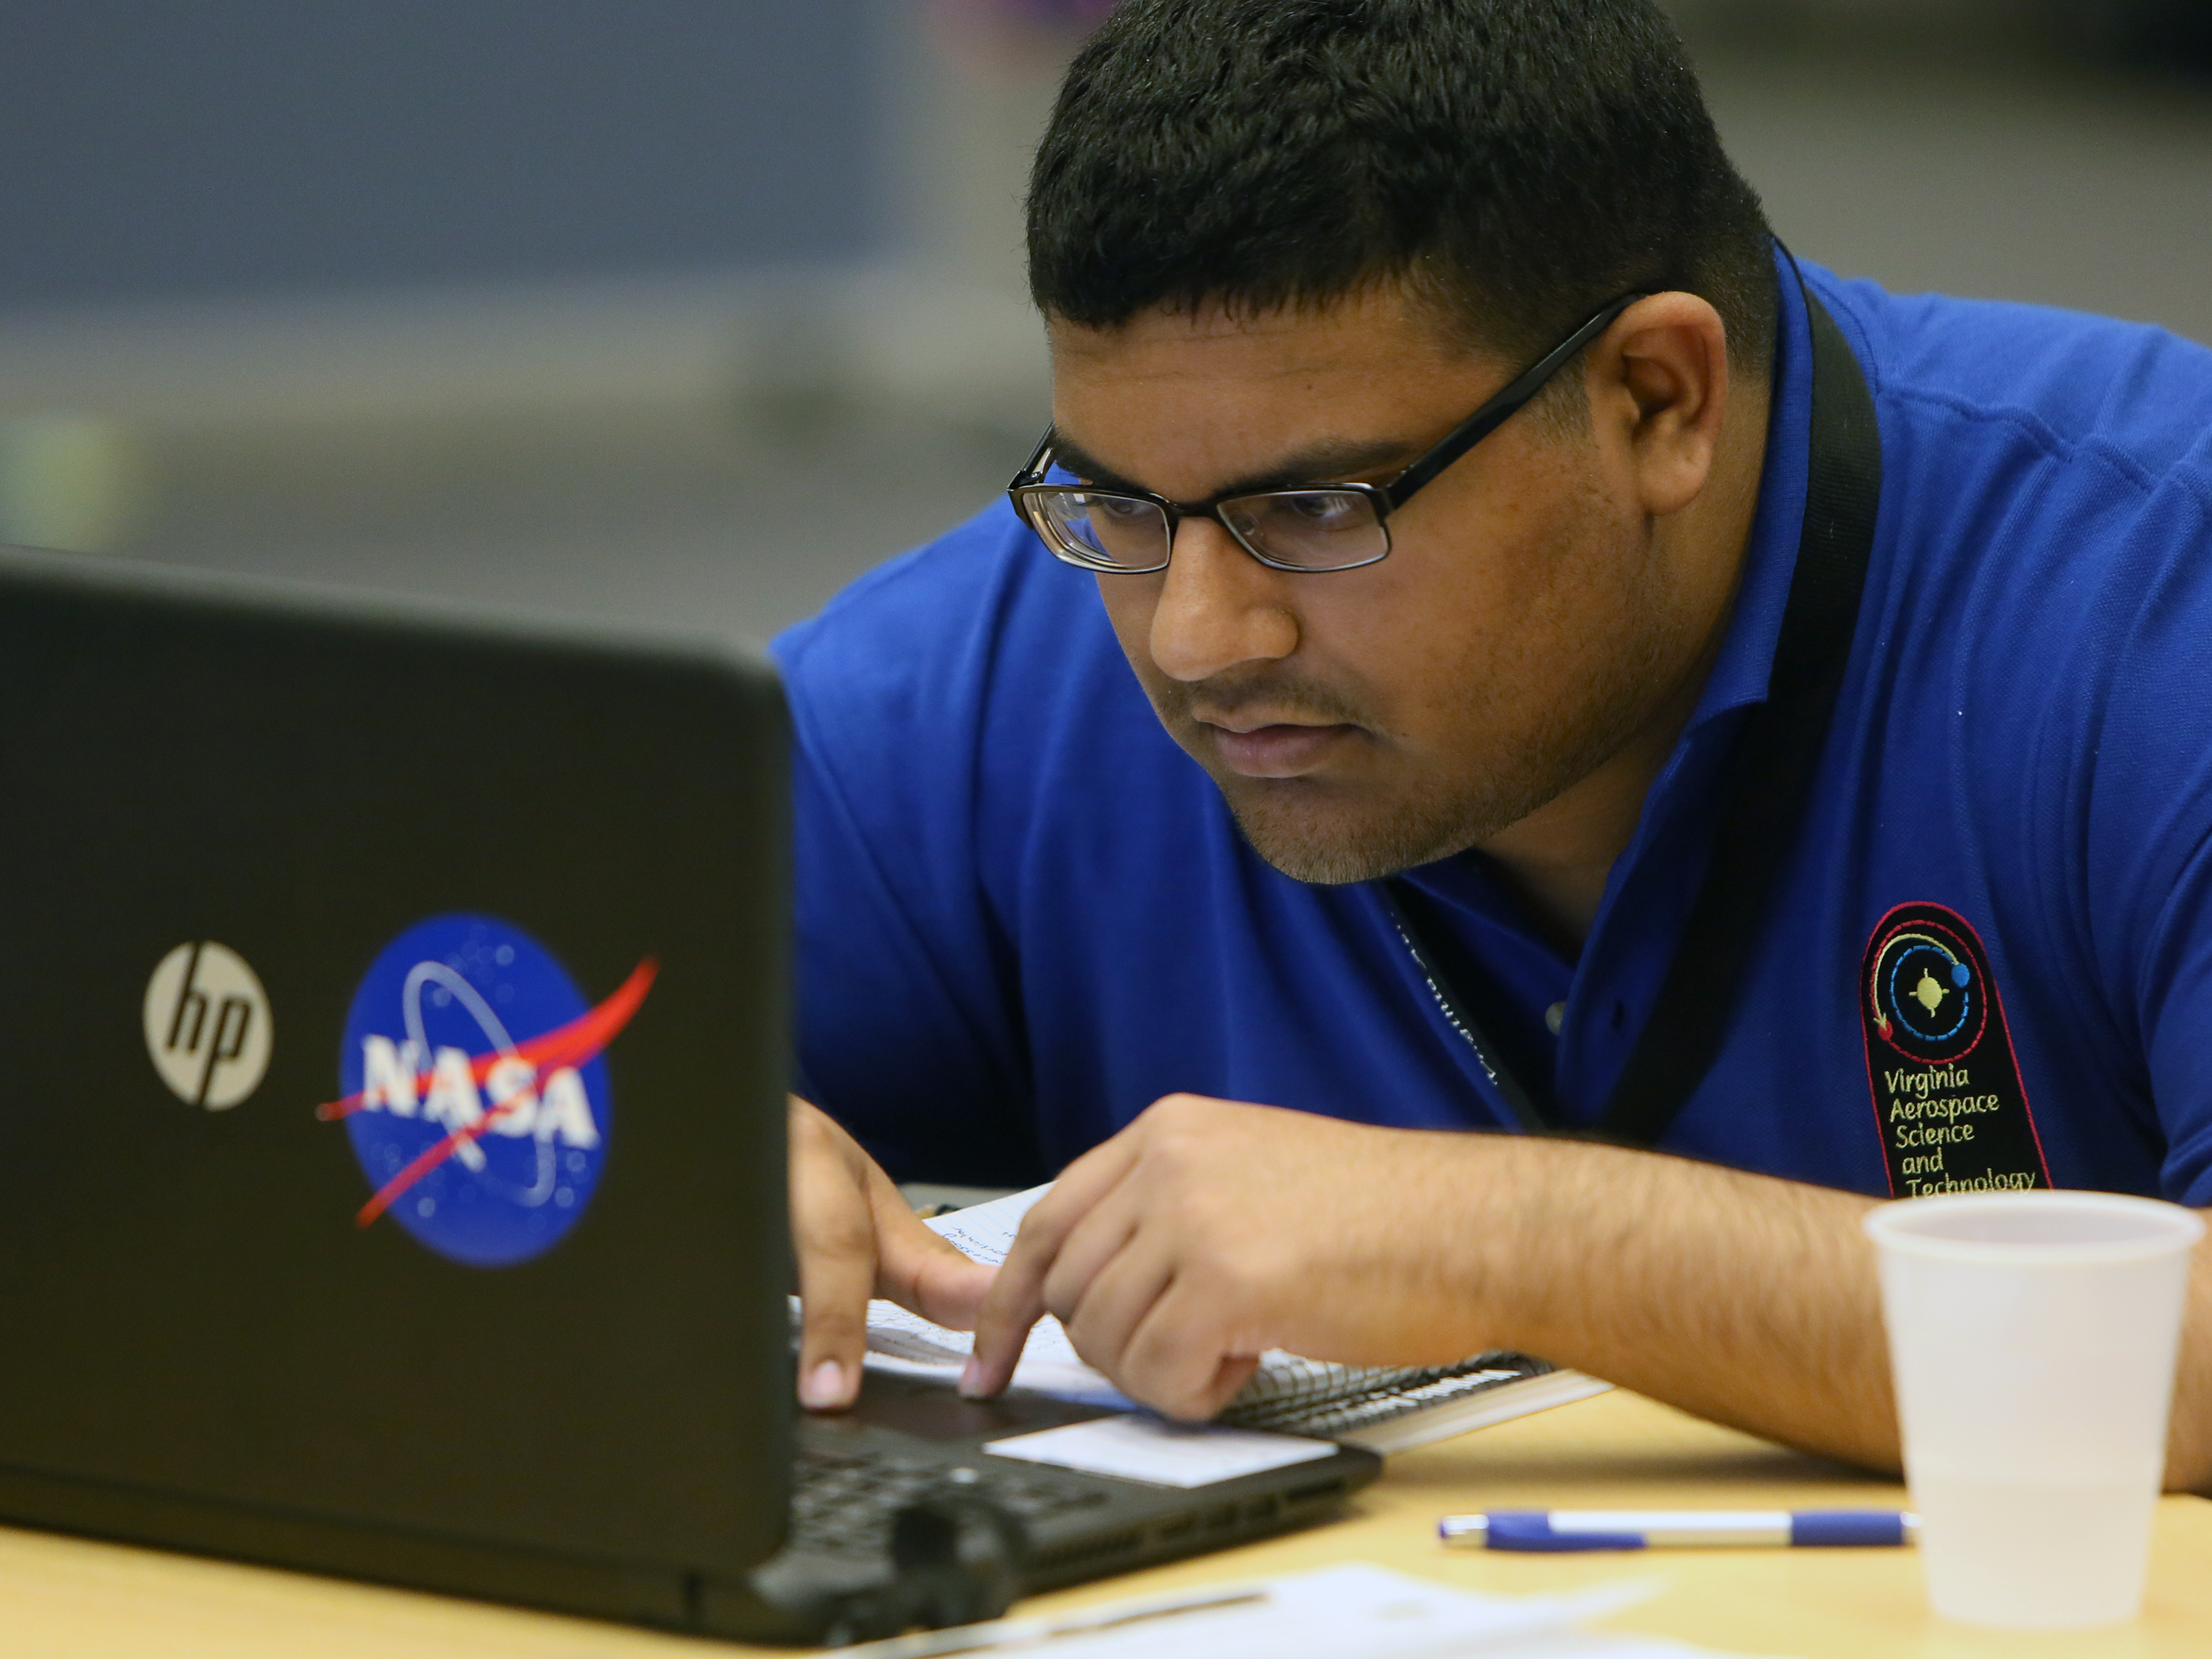 mission to mars essay Opponents claim that a mars mission may be the most expensive expedition in us history in 1989 nasa estimated that a people-to-mars would cost $400 billion, which inflates to $600 billion today however, such an argument neglects a fact that a mars mission may allow humans to know more about the earth.